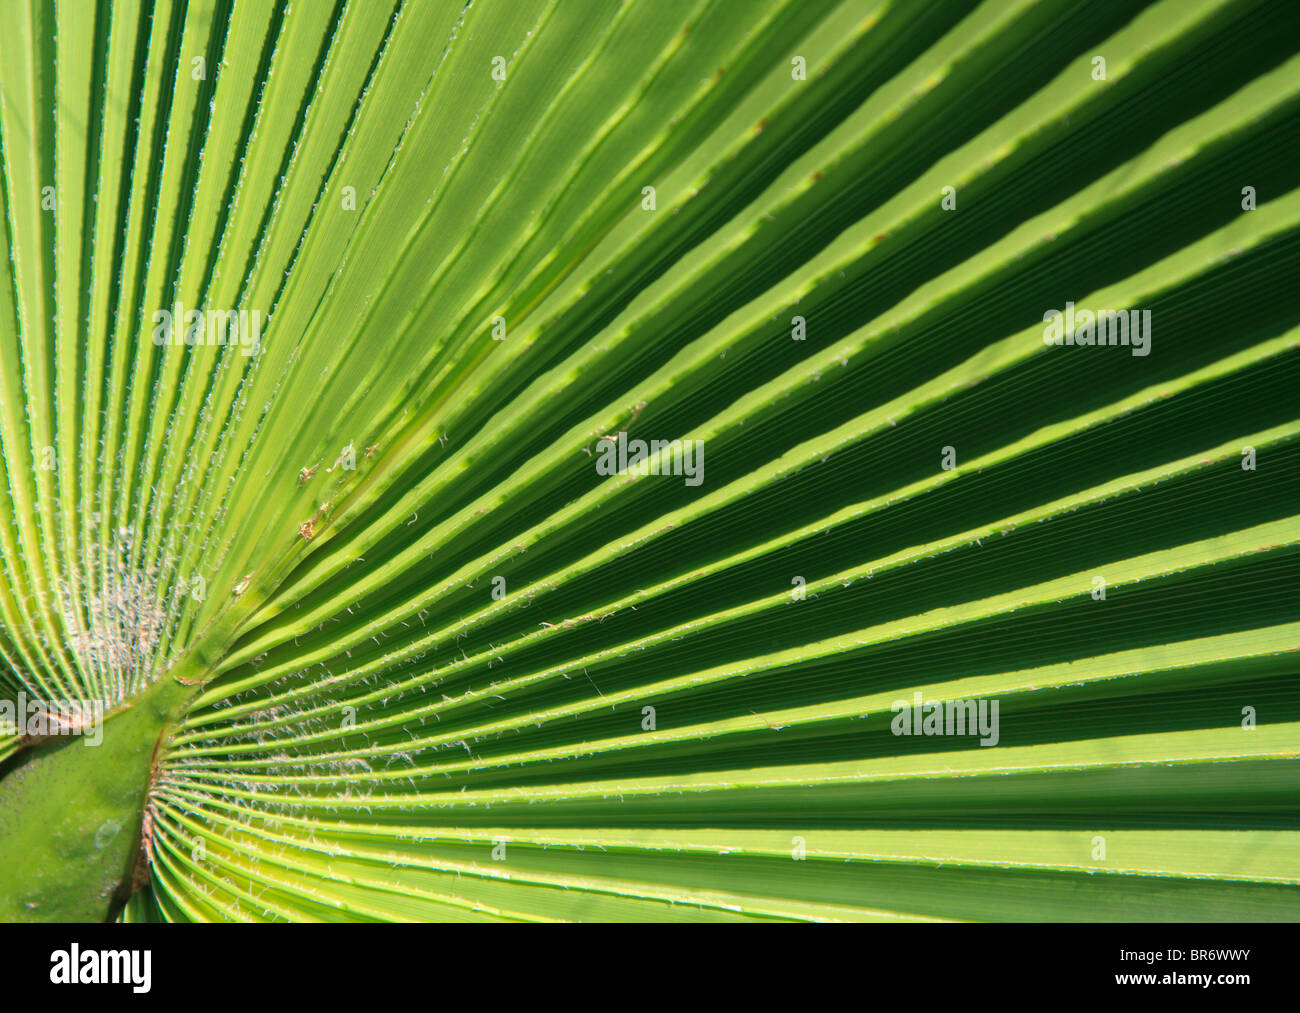 Very detailed high resolution close-up shot of a fresh green palm leave - Stock Image